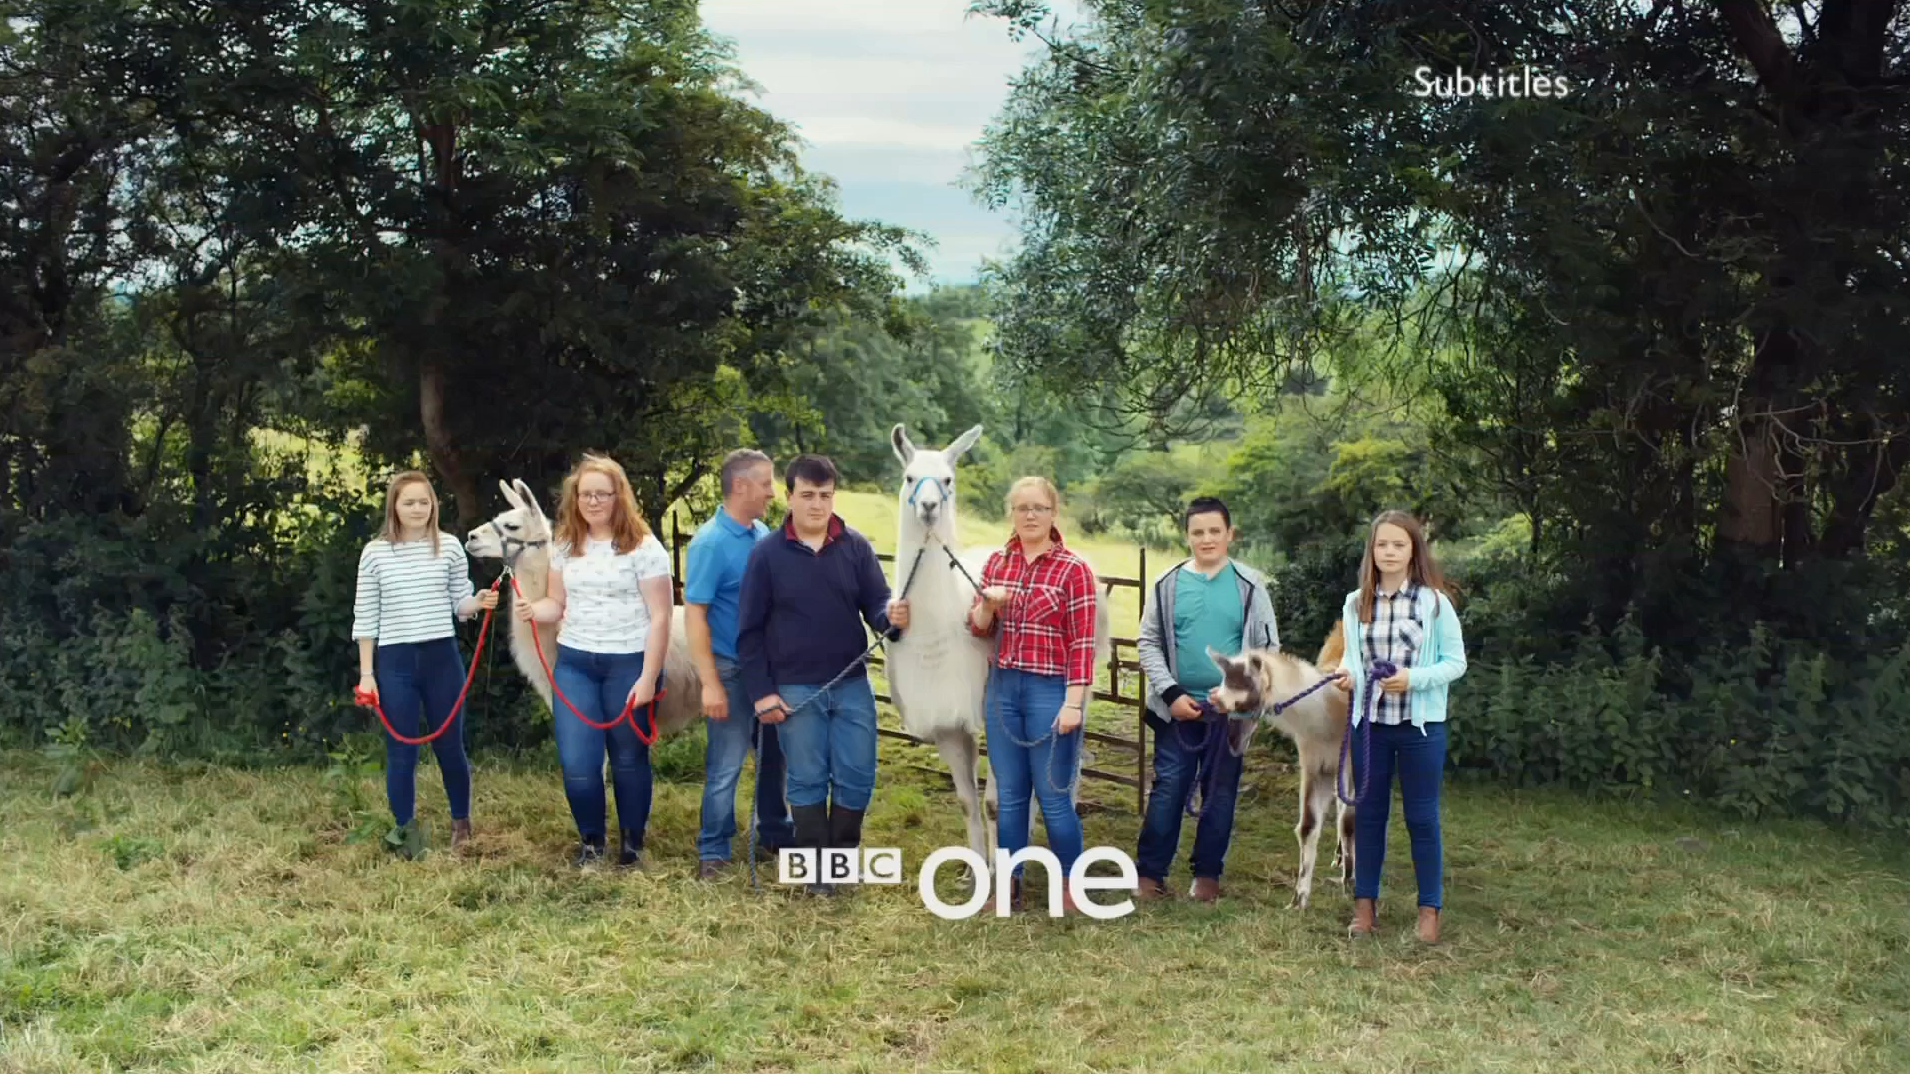 PICTURED: BBC One ident - Llama Trekkers, Armagh.